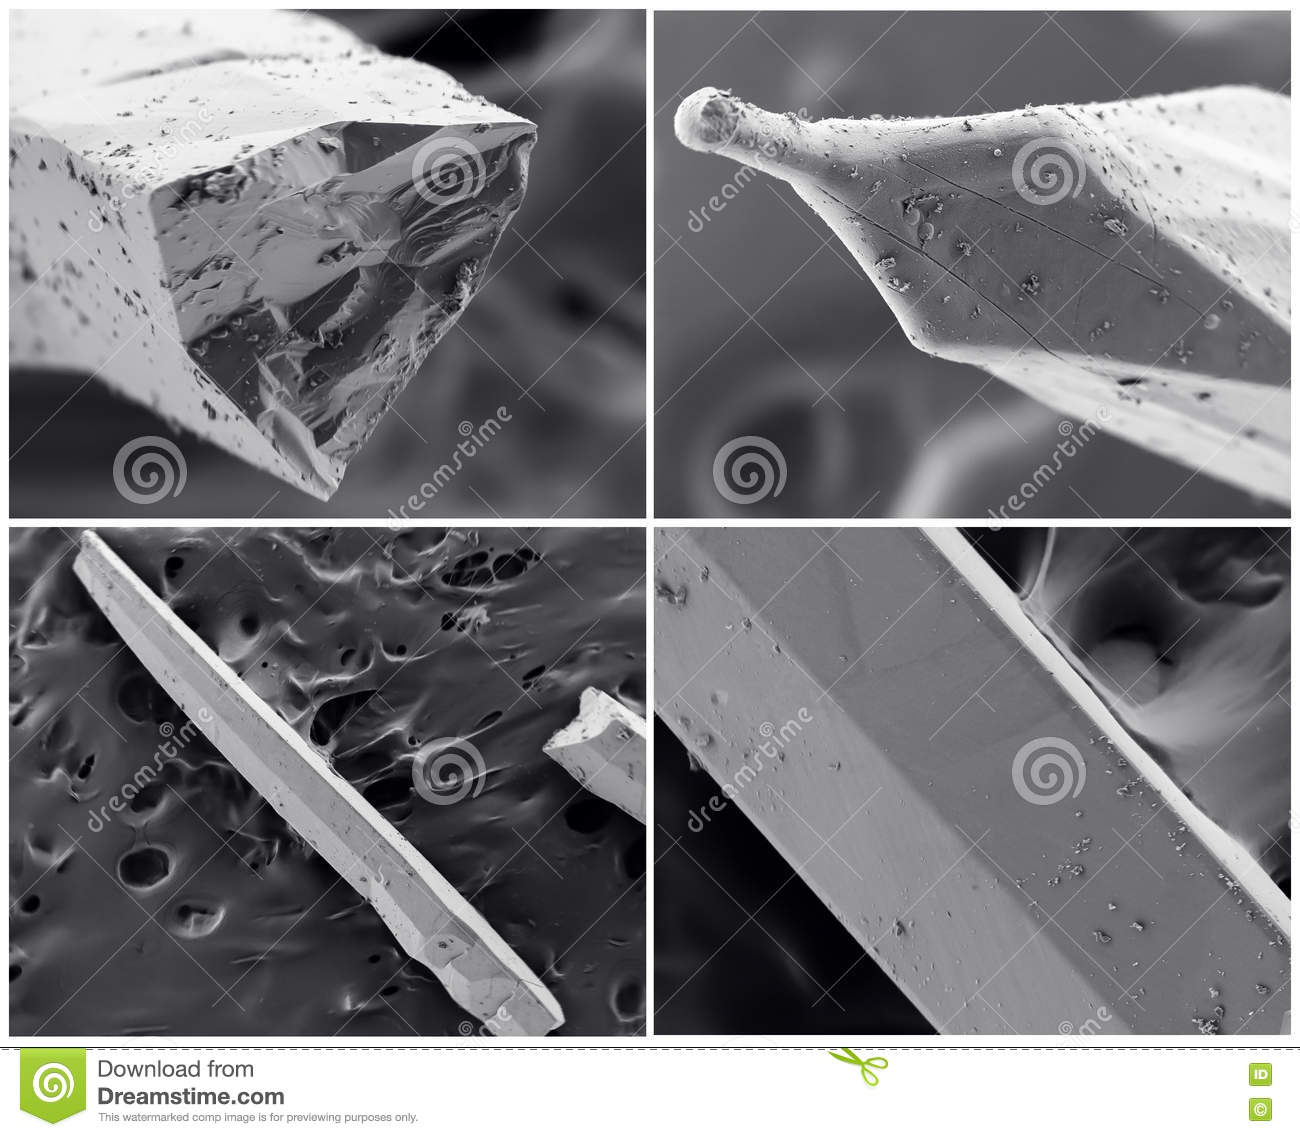 Electron microscopy is a nanotechnology tool